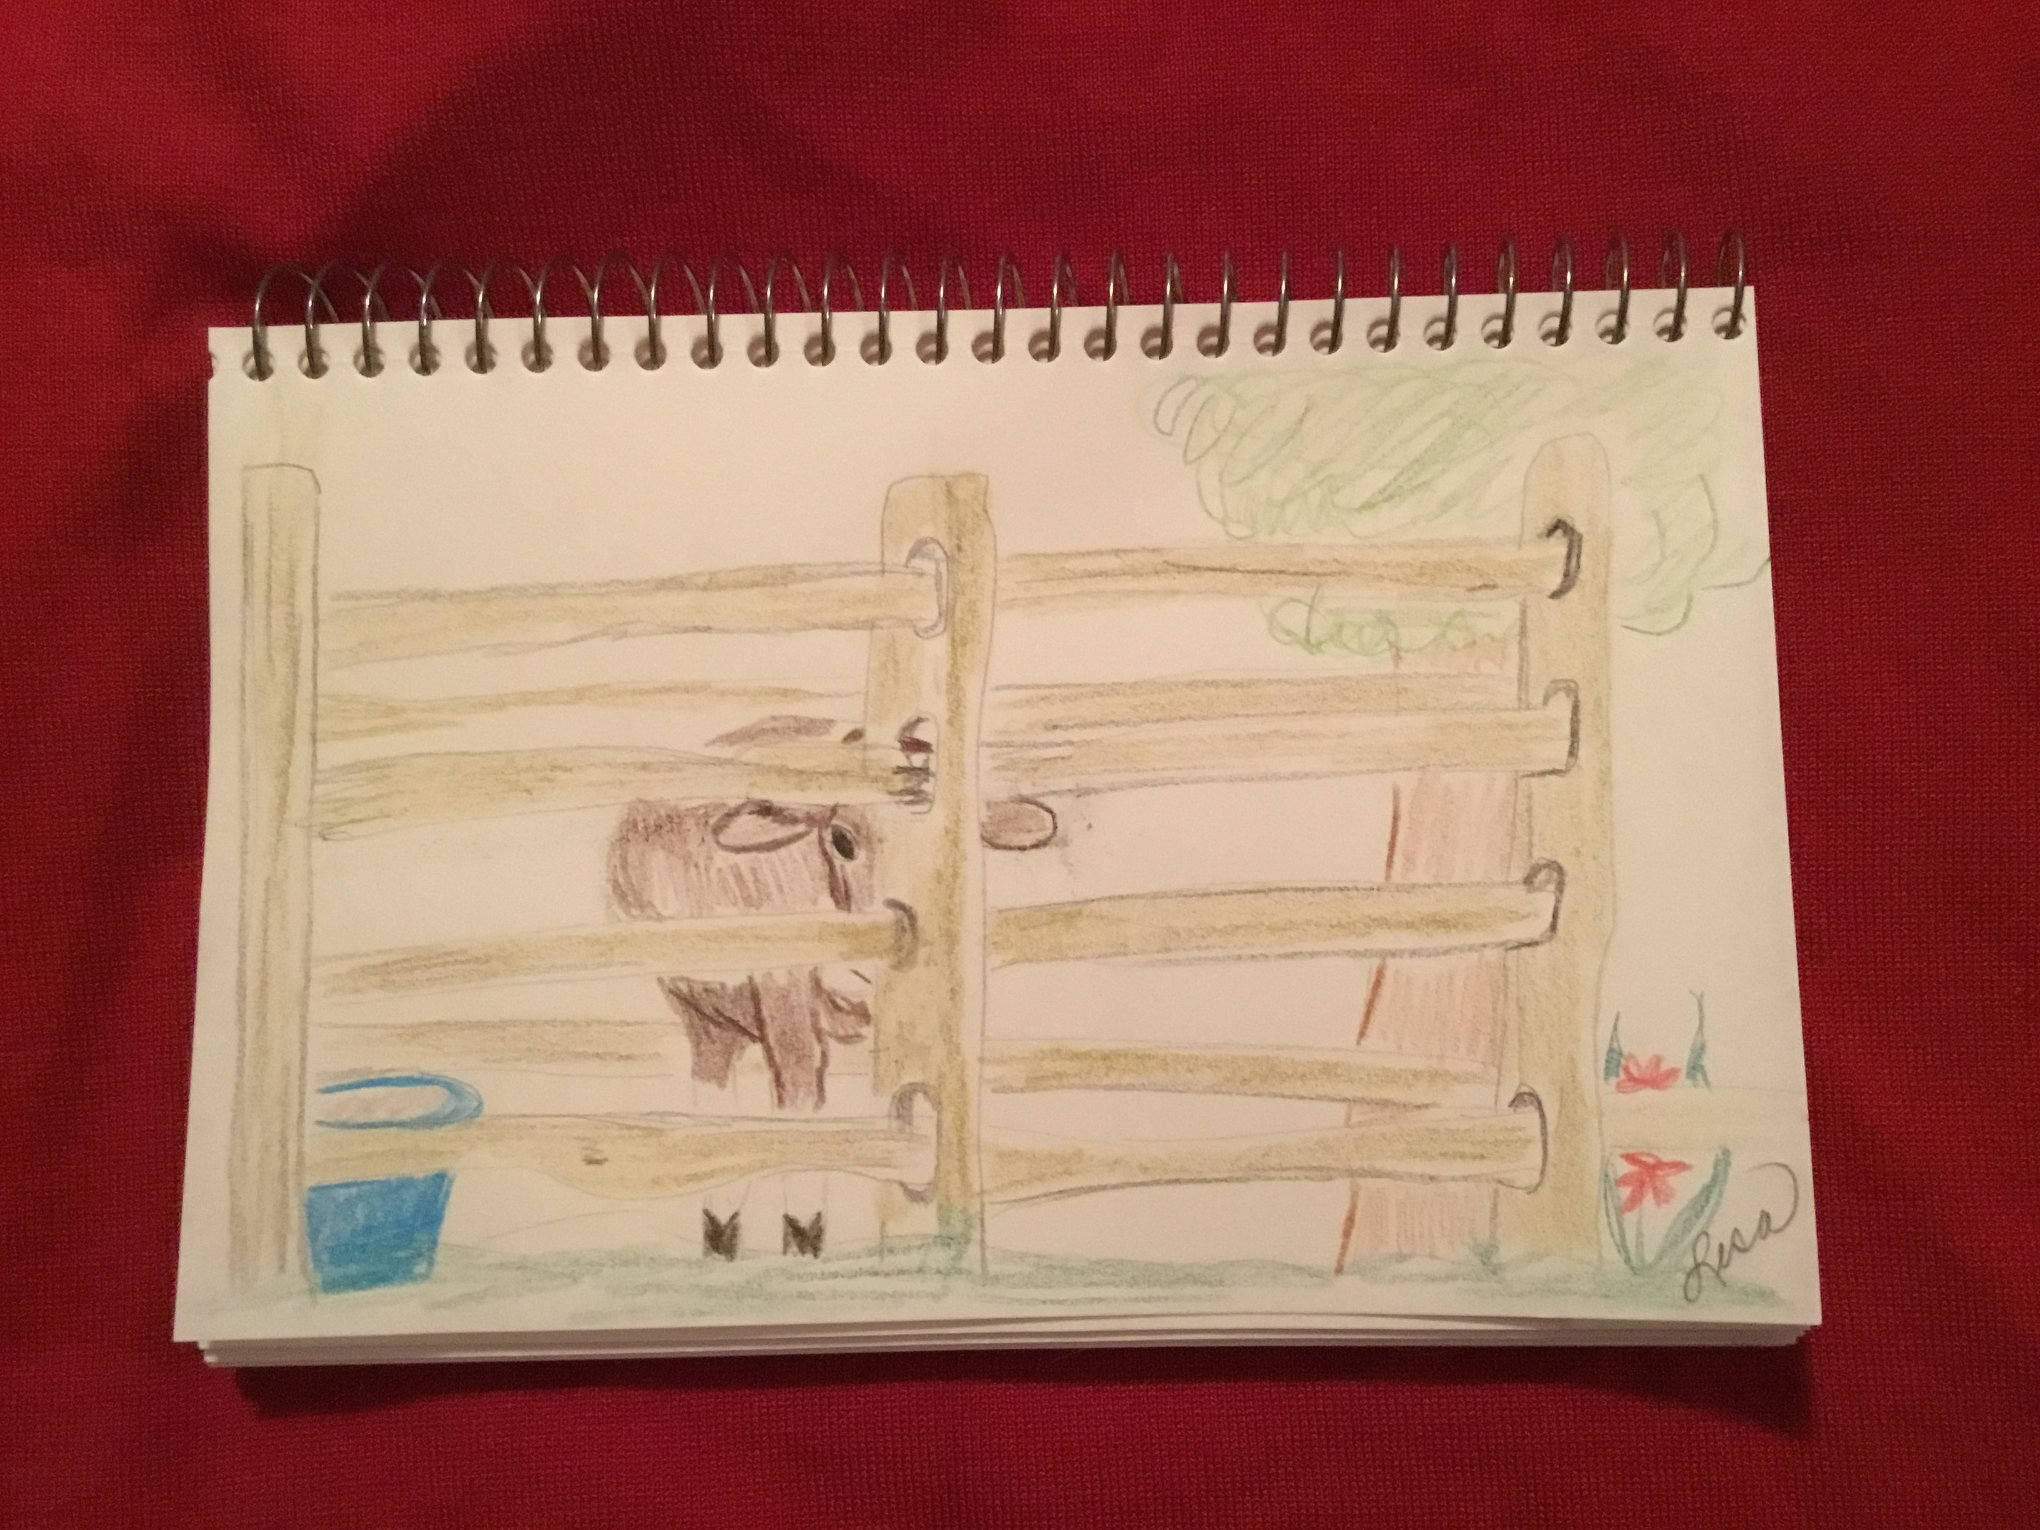 Jersey calf behind fence (you may need to use your imagination! Lisa Muzzey